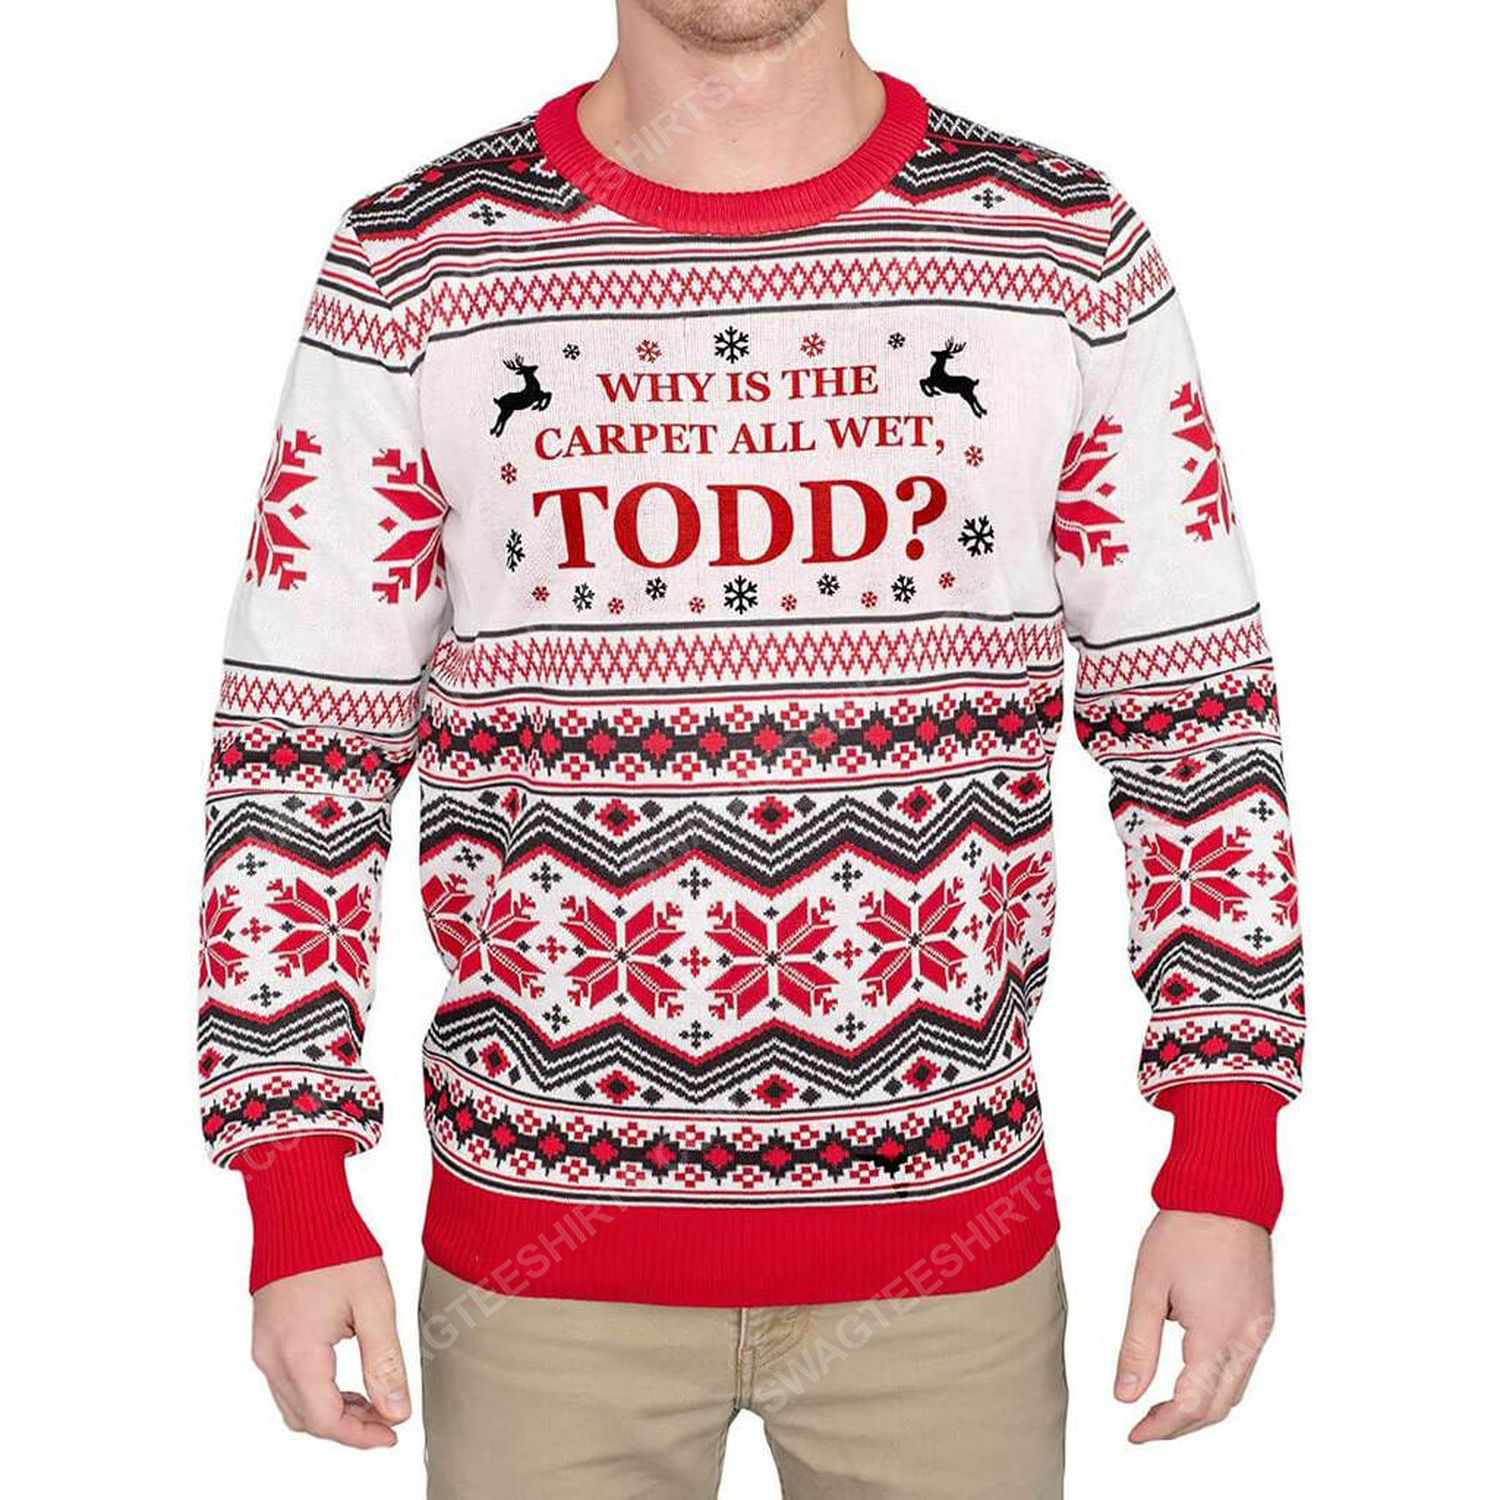 Why is the carpet all wet todd full print ugly christmas sweater 2 - Copy